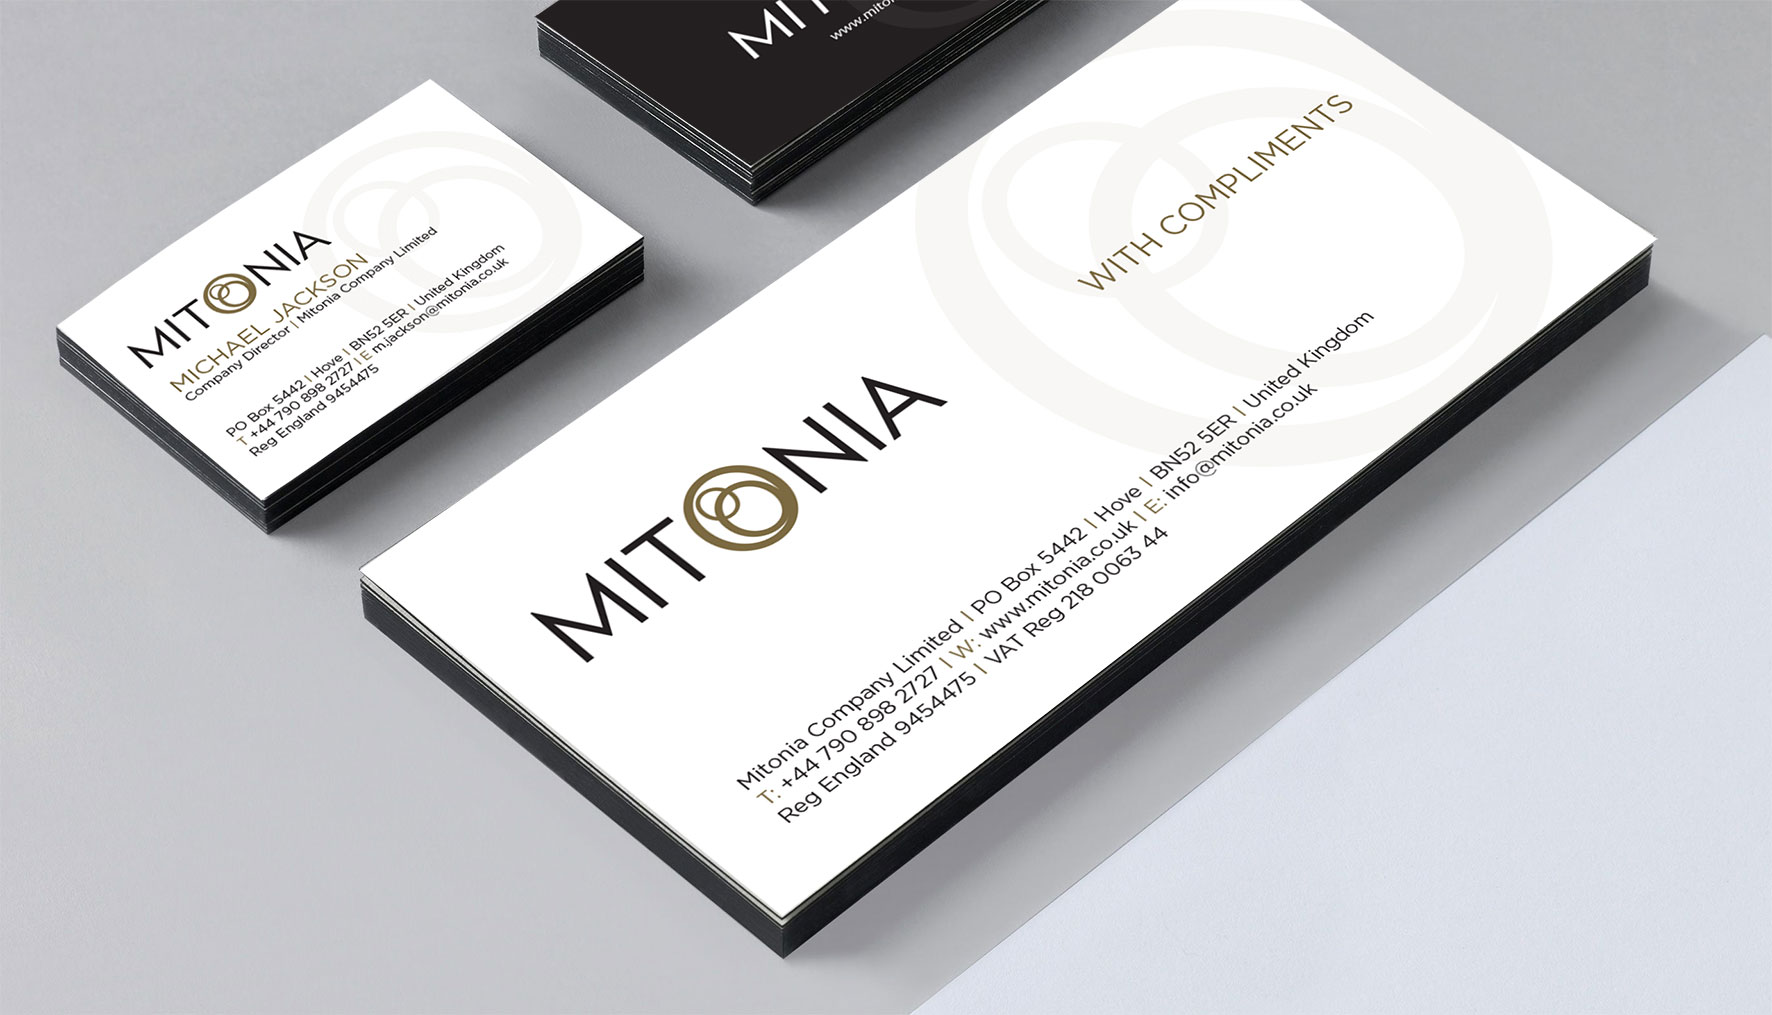 Mitonia Compliment Slip & Business Card